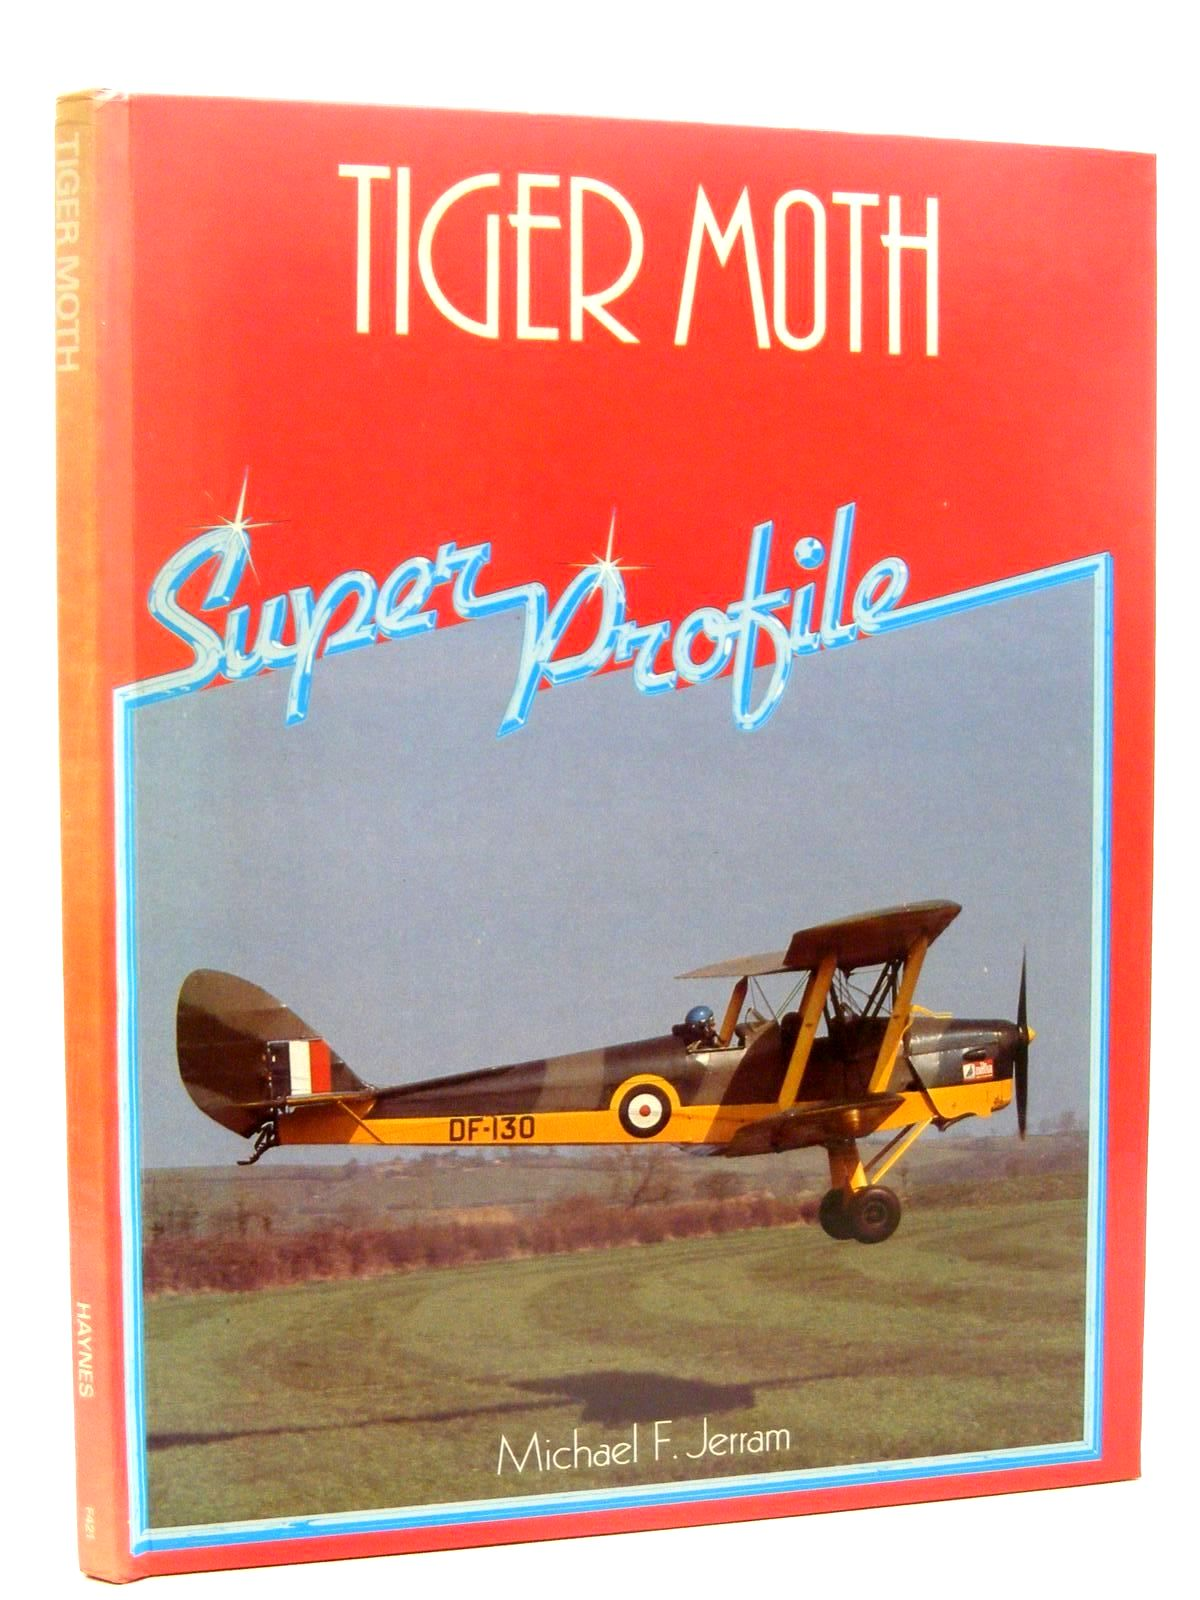 Photo of TIGER MOTH SUPER PROFILE written by Jerram, Michael F. published by Foulis, Haynes Publishing Group (STOCK CODE: 1610340)  for sale by Stella & Rose's Books